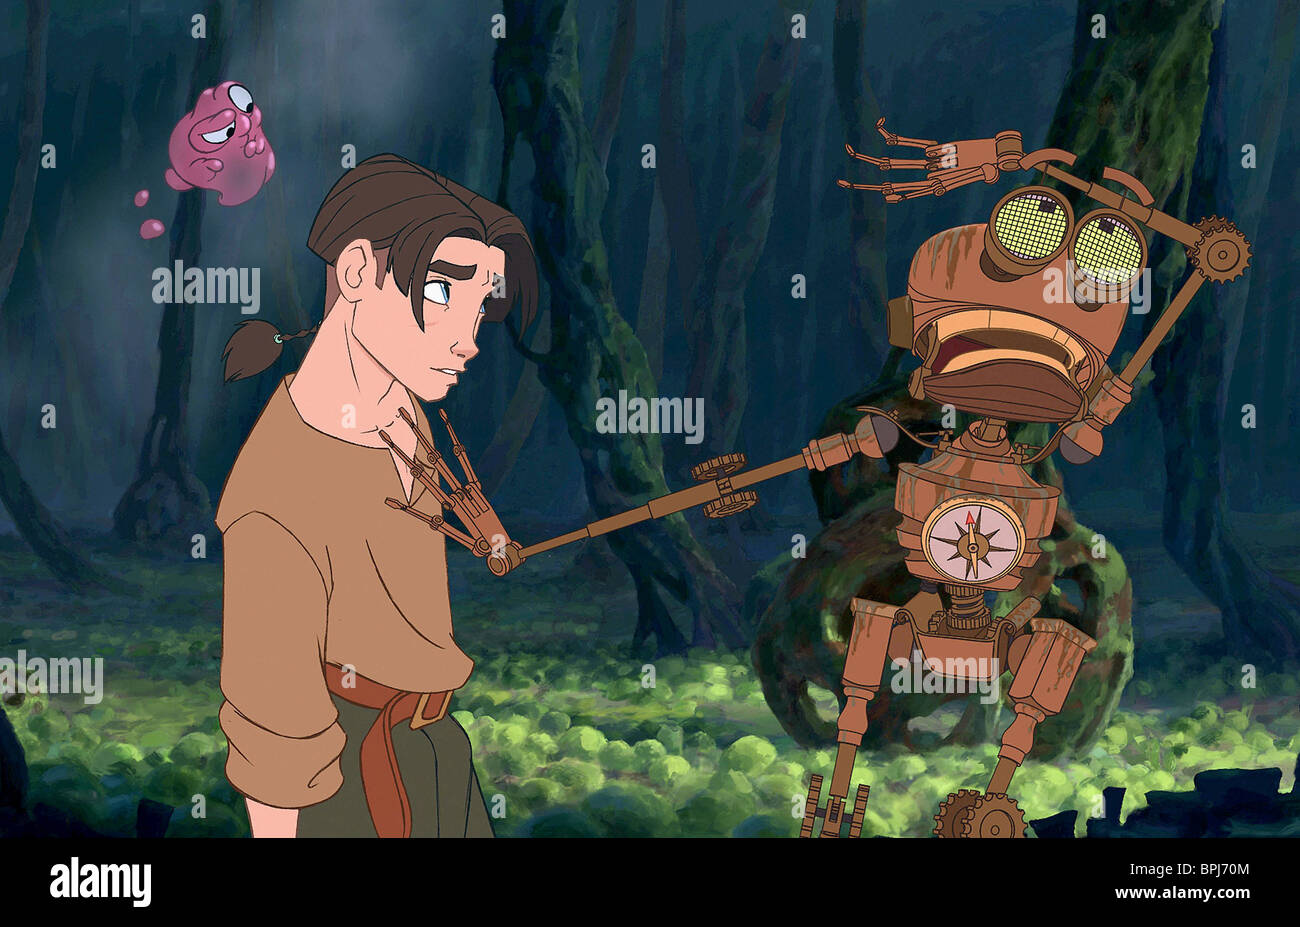 Morph Jim Hawkins Ben Treasure Planet 2002 Stock Photo Alamy